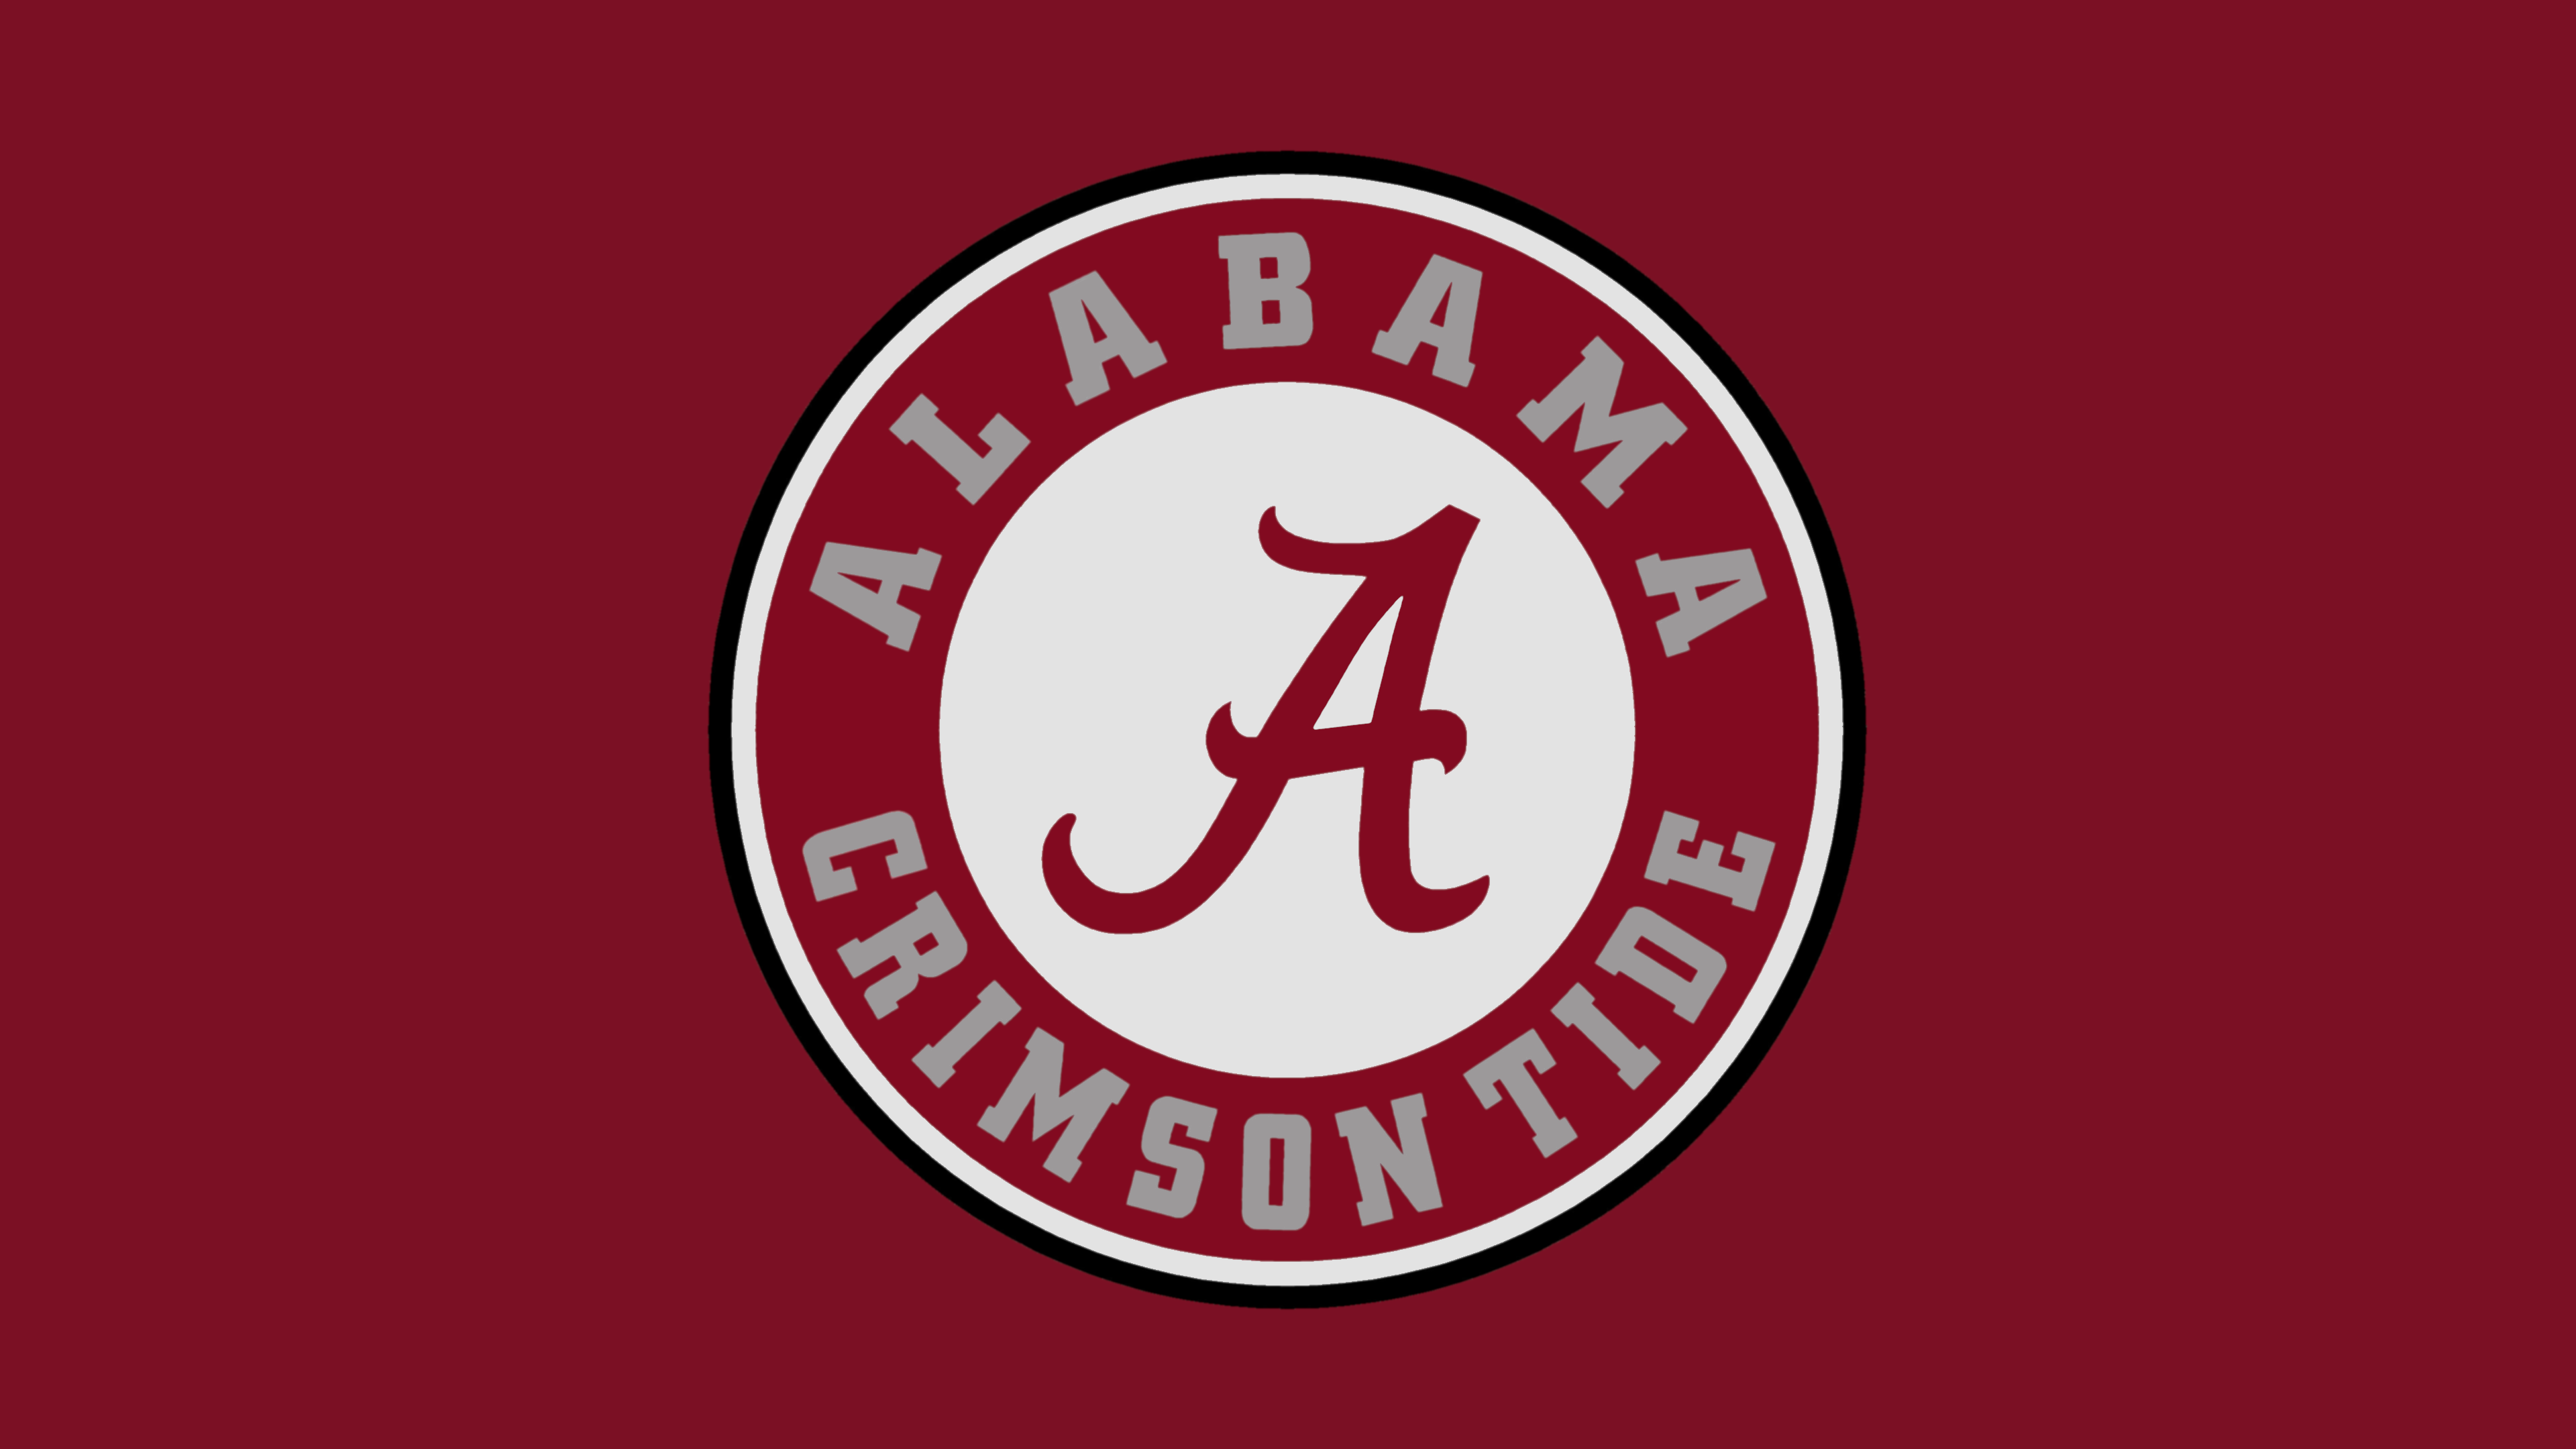 Plain Crimson Alabama Crimson Tide Logo Alabama Logo Alabama Crimson Tide